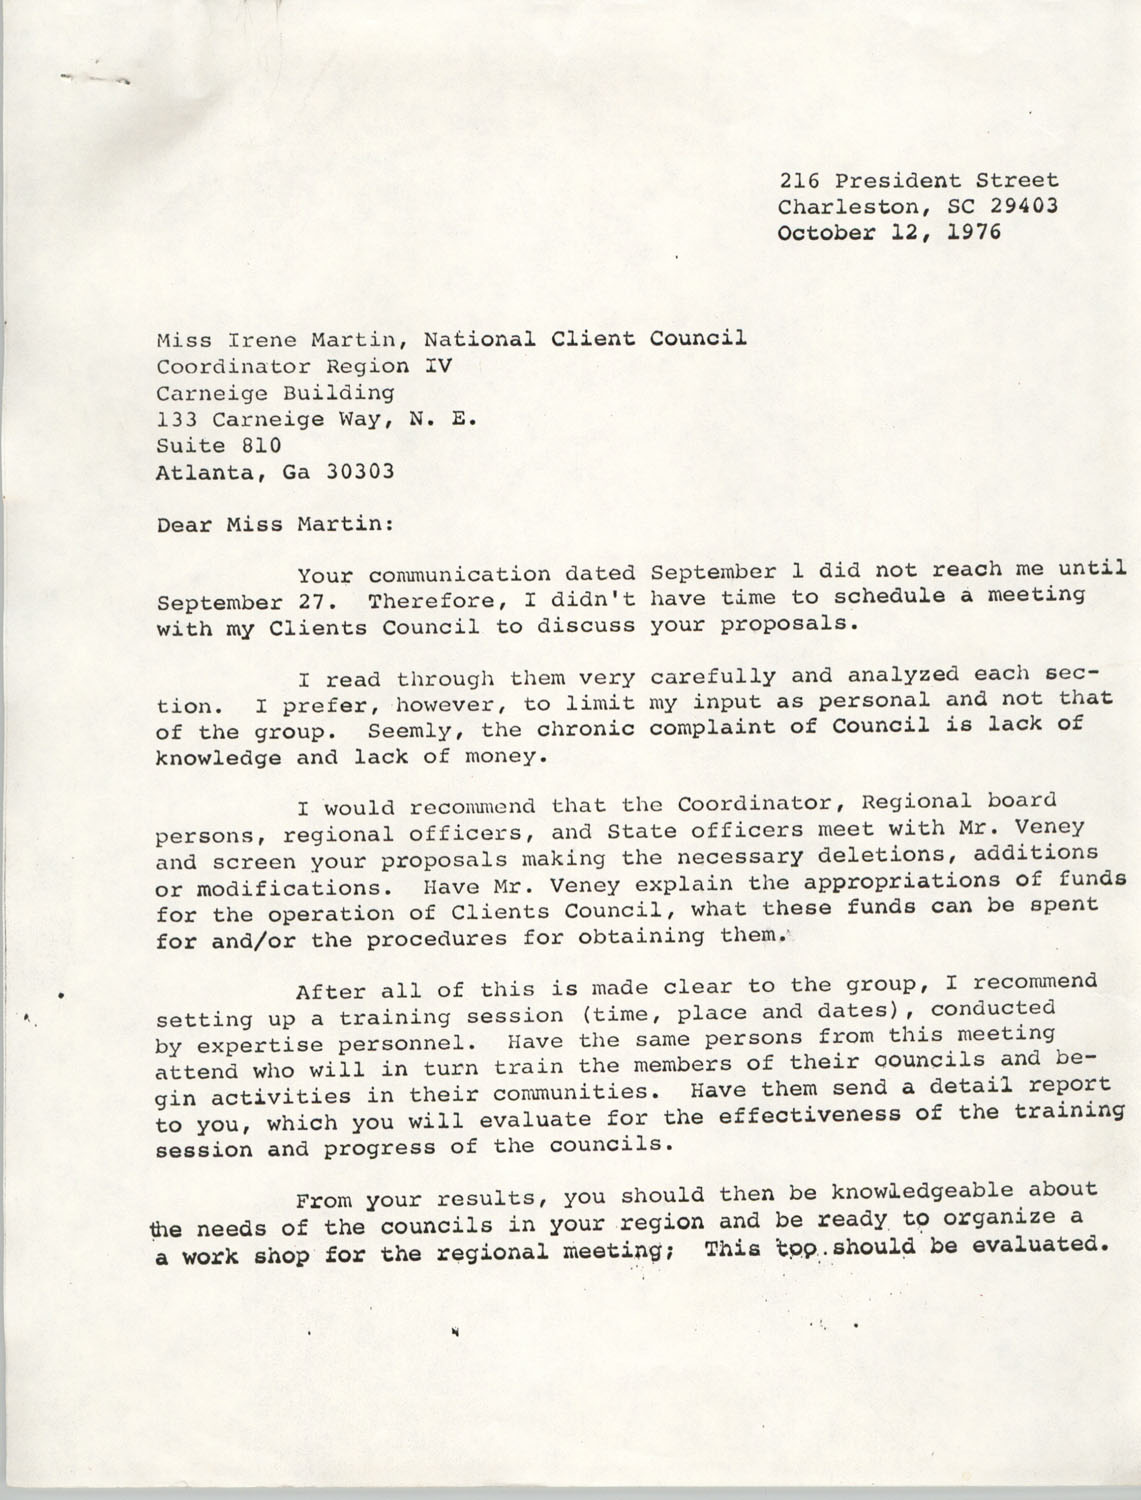 Letter from Stella D. Mosley to Irene Martin, October 12, 1976